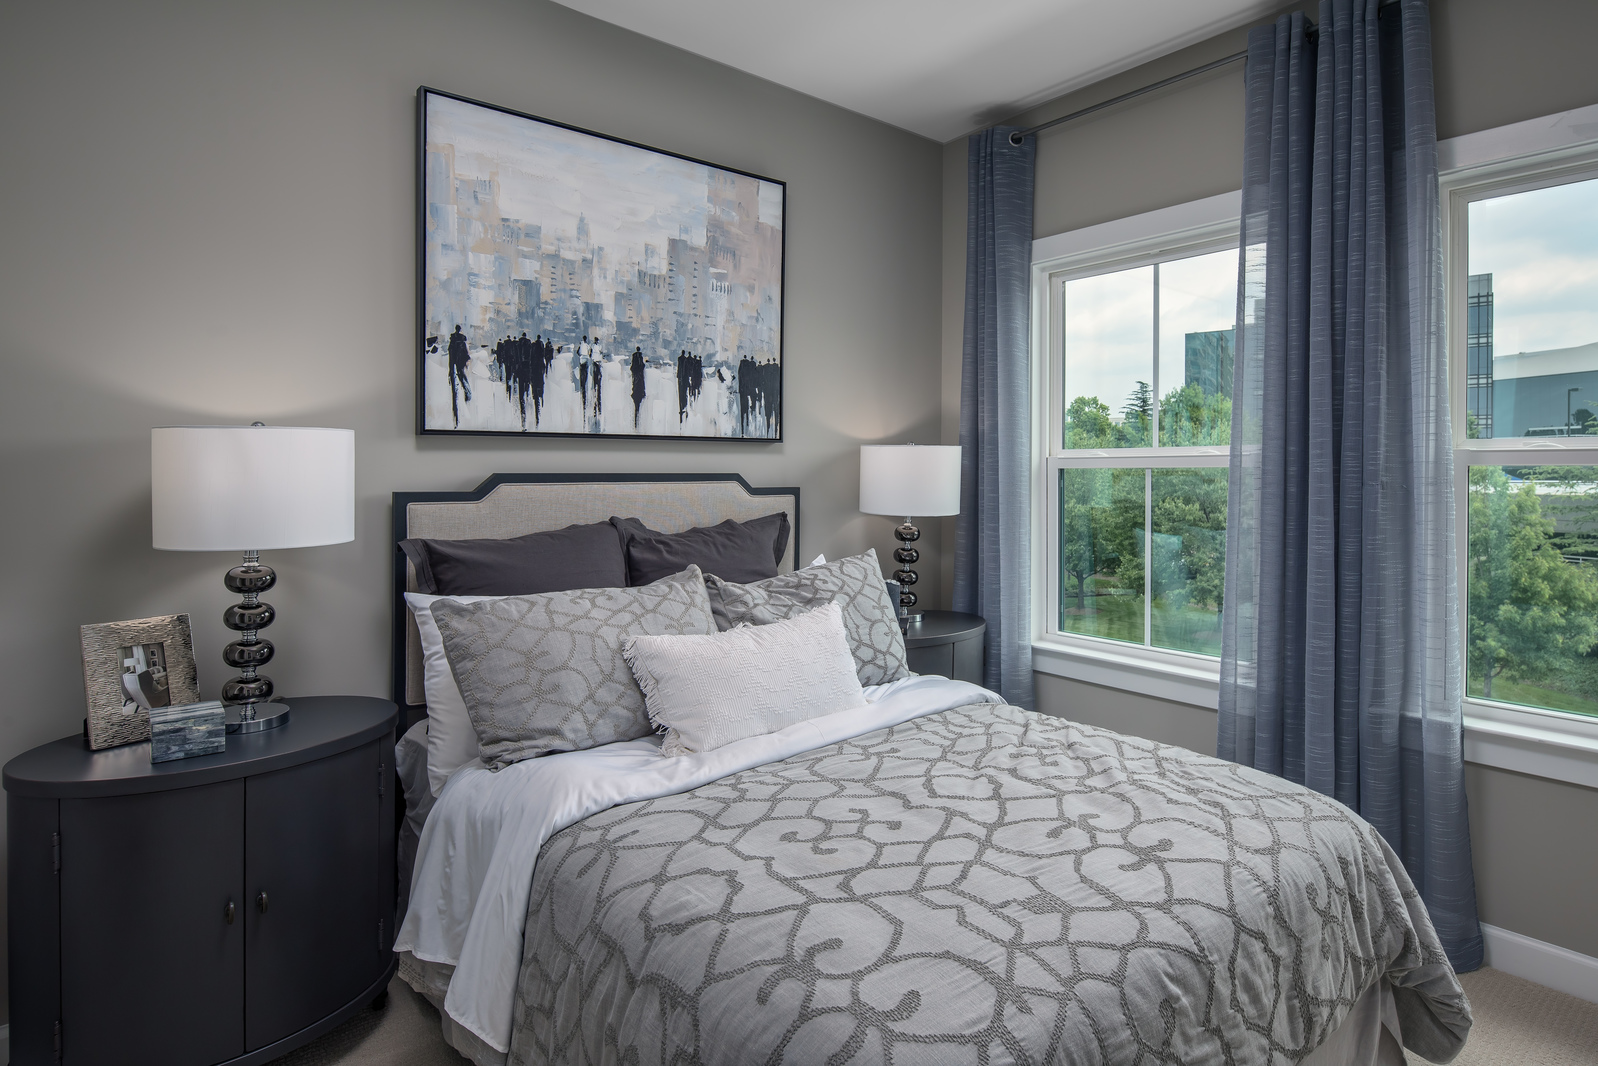 Host out-of-town guests easily with our generously sized floorplans. With sizable secondary bedrooms, your friends will love visiting.